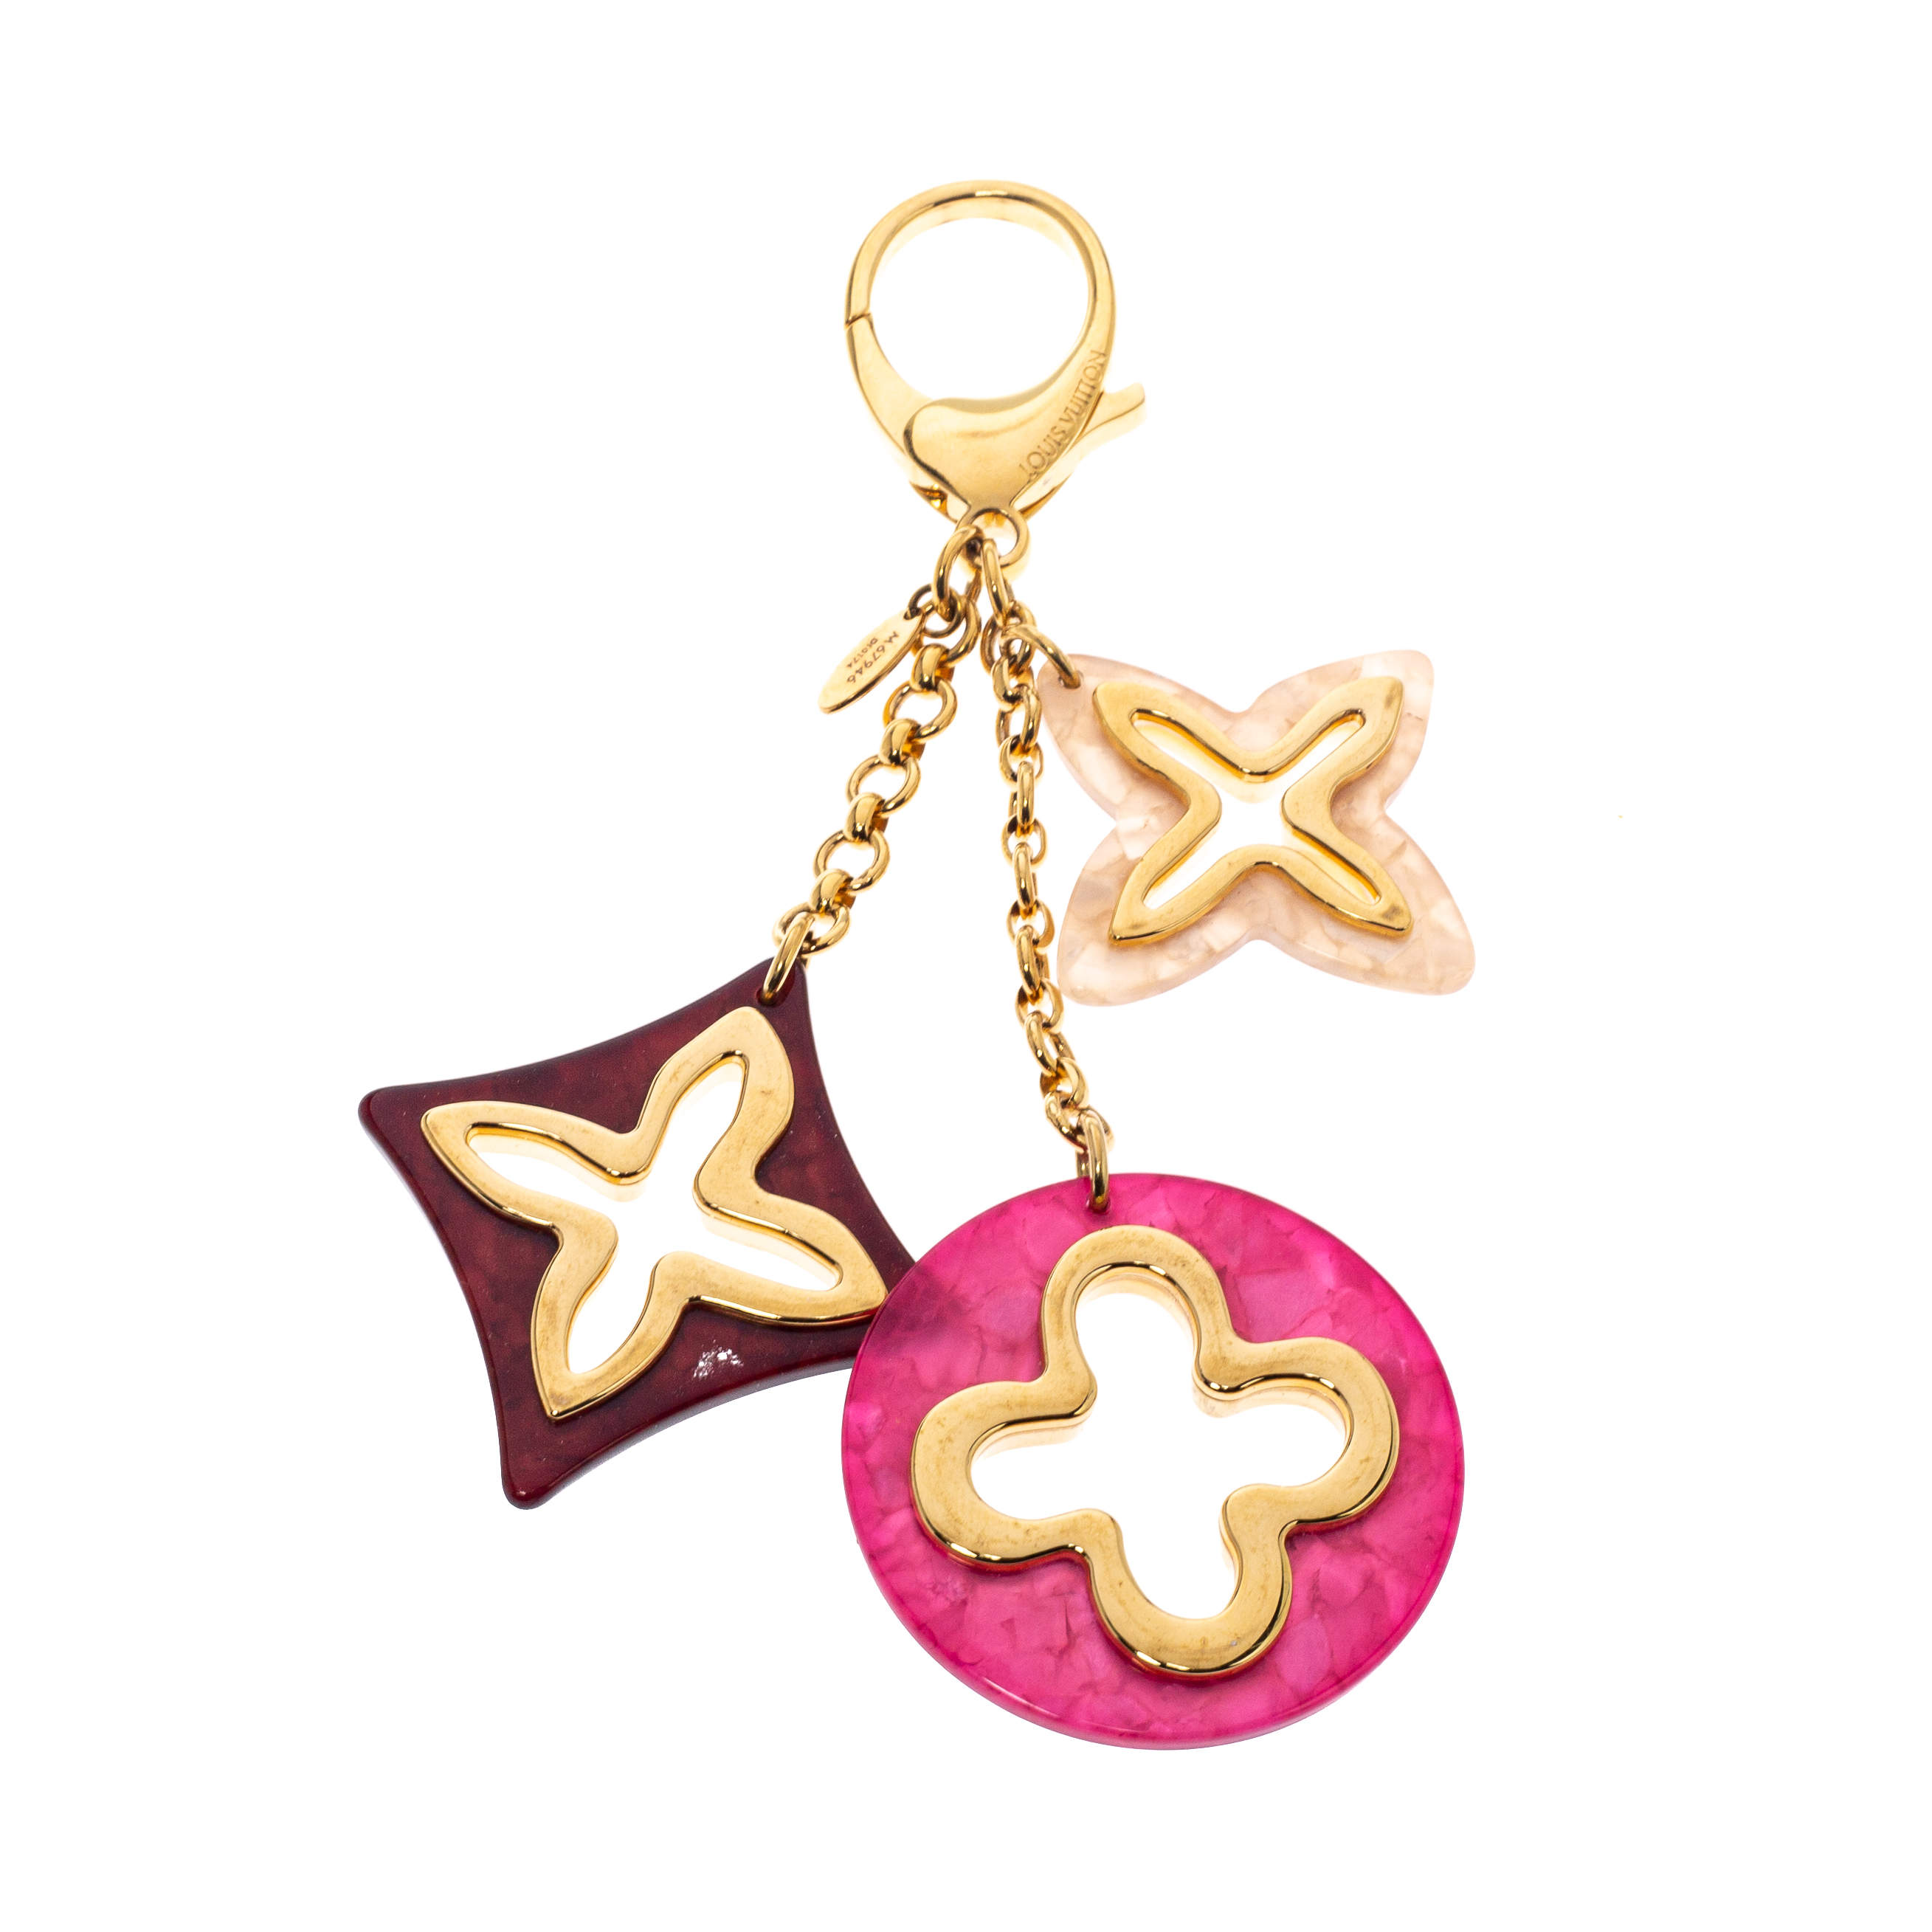 Louis Vuitton Insolence Multicolor Resin Gold Tone Bag Charm